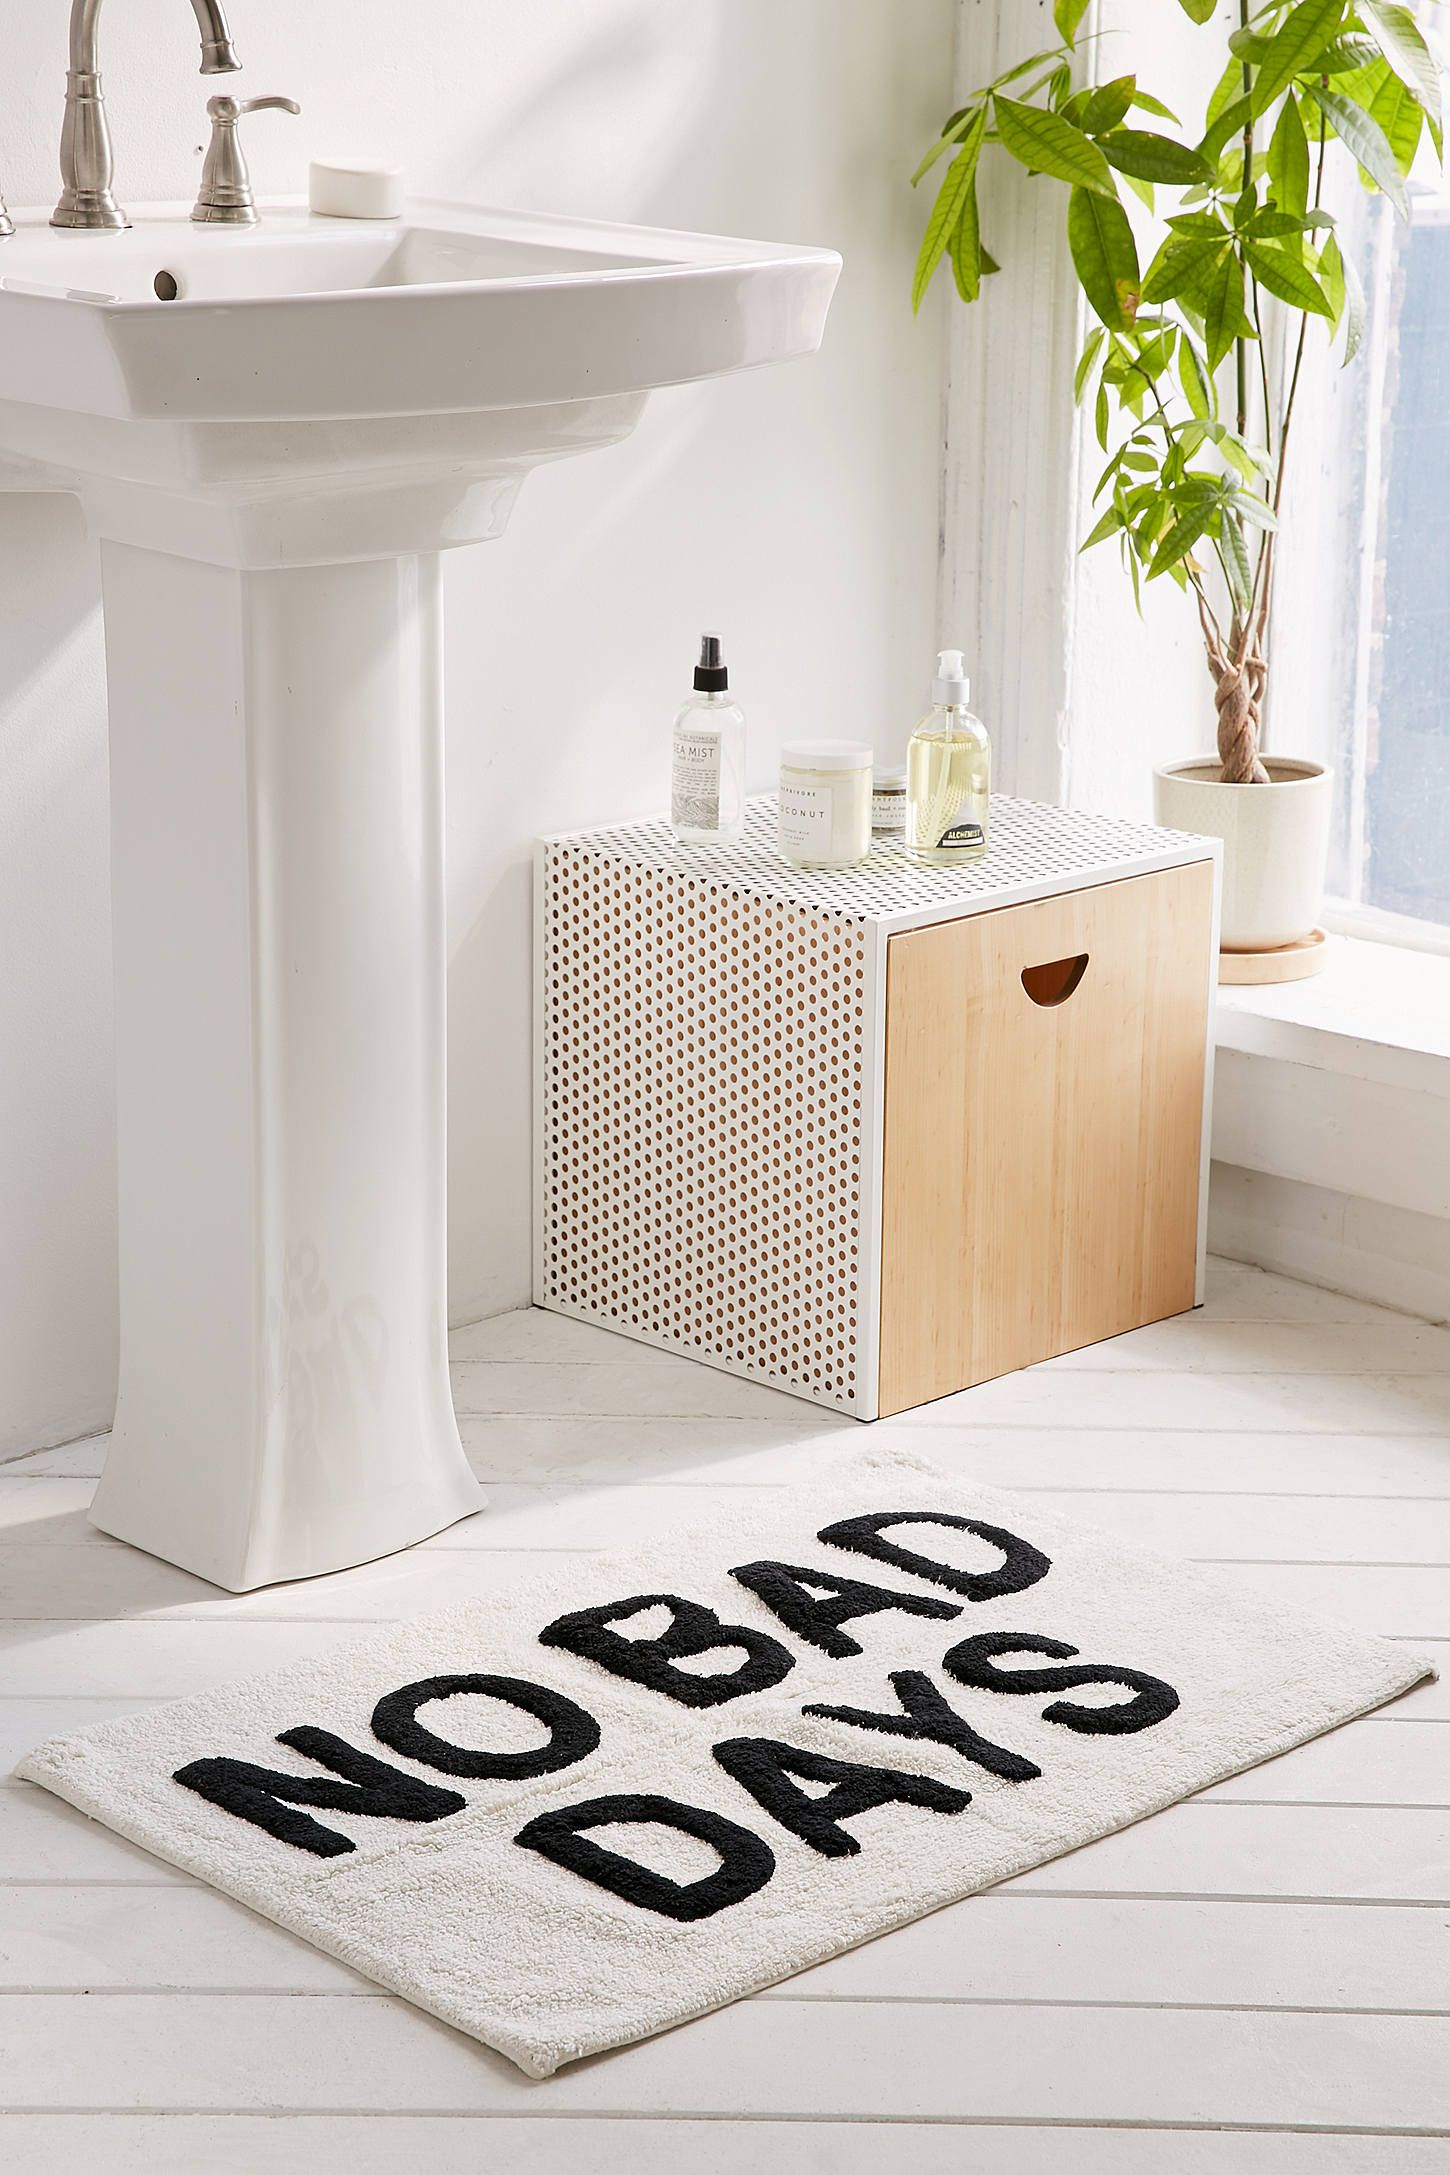 winking and new flats mat at urban outfitters room bath today pin pinterest cloud shop